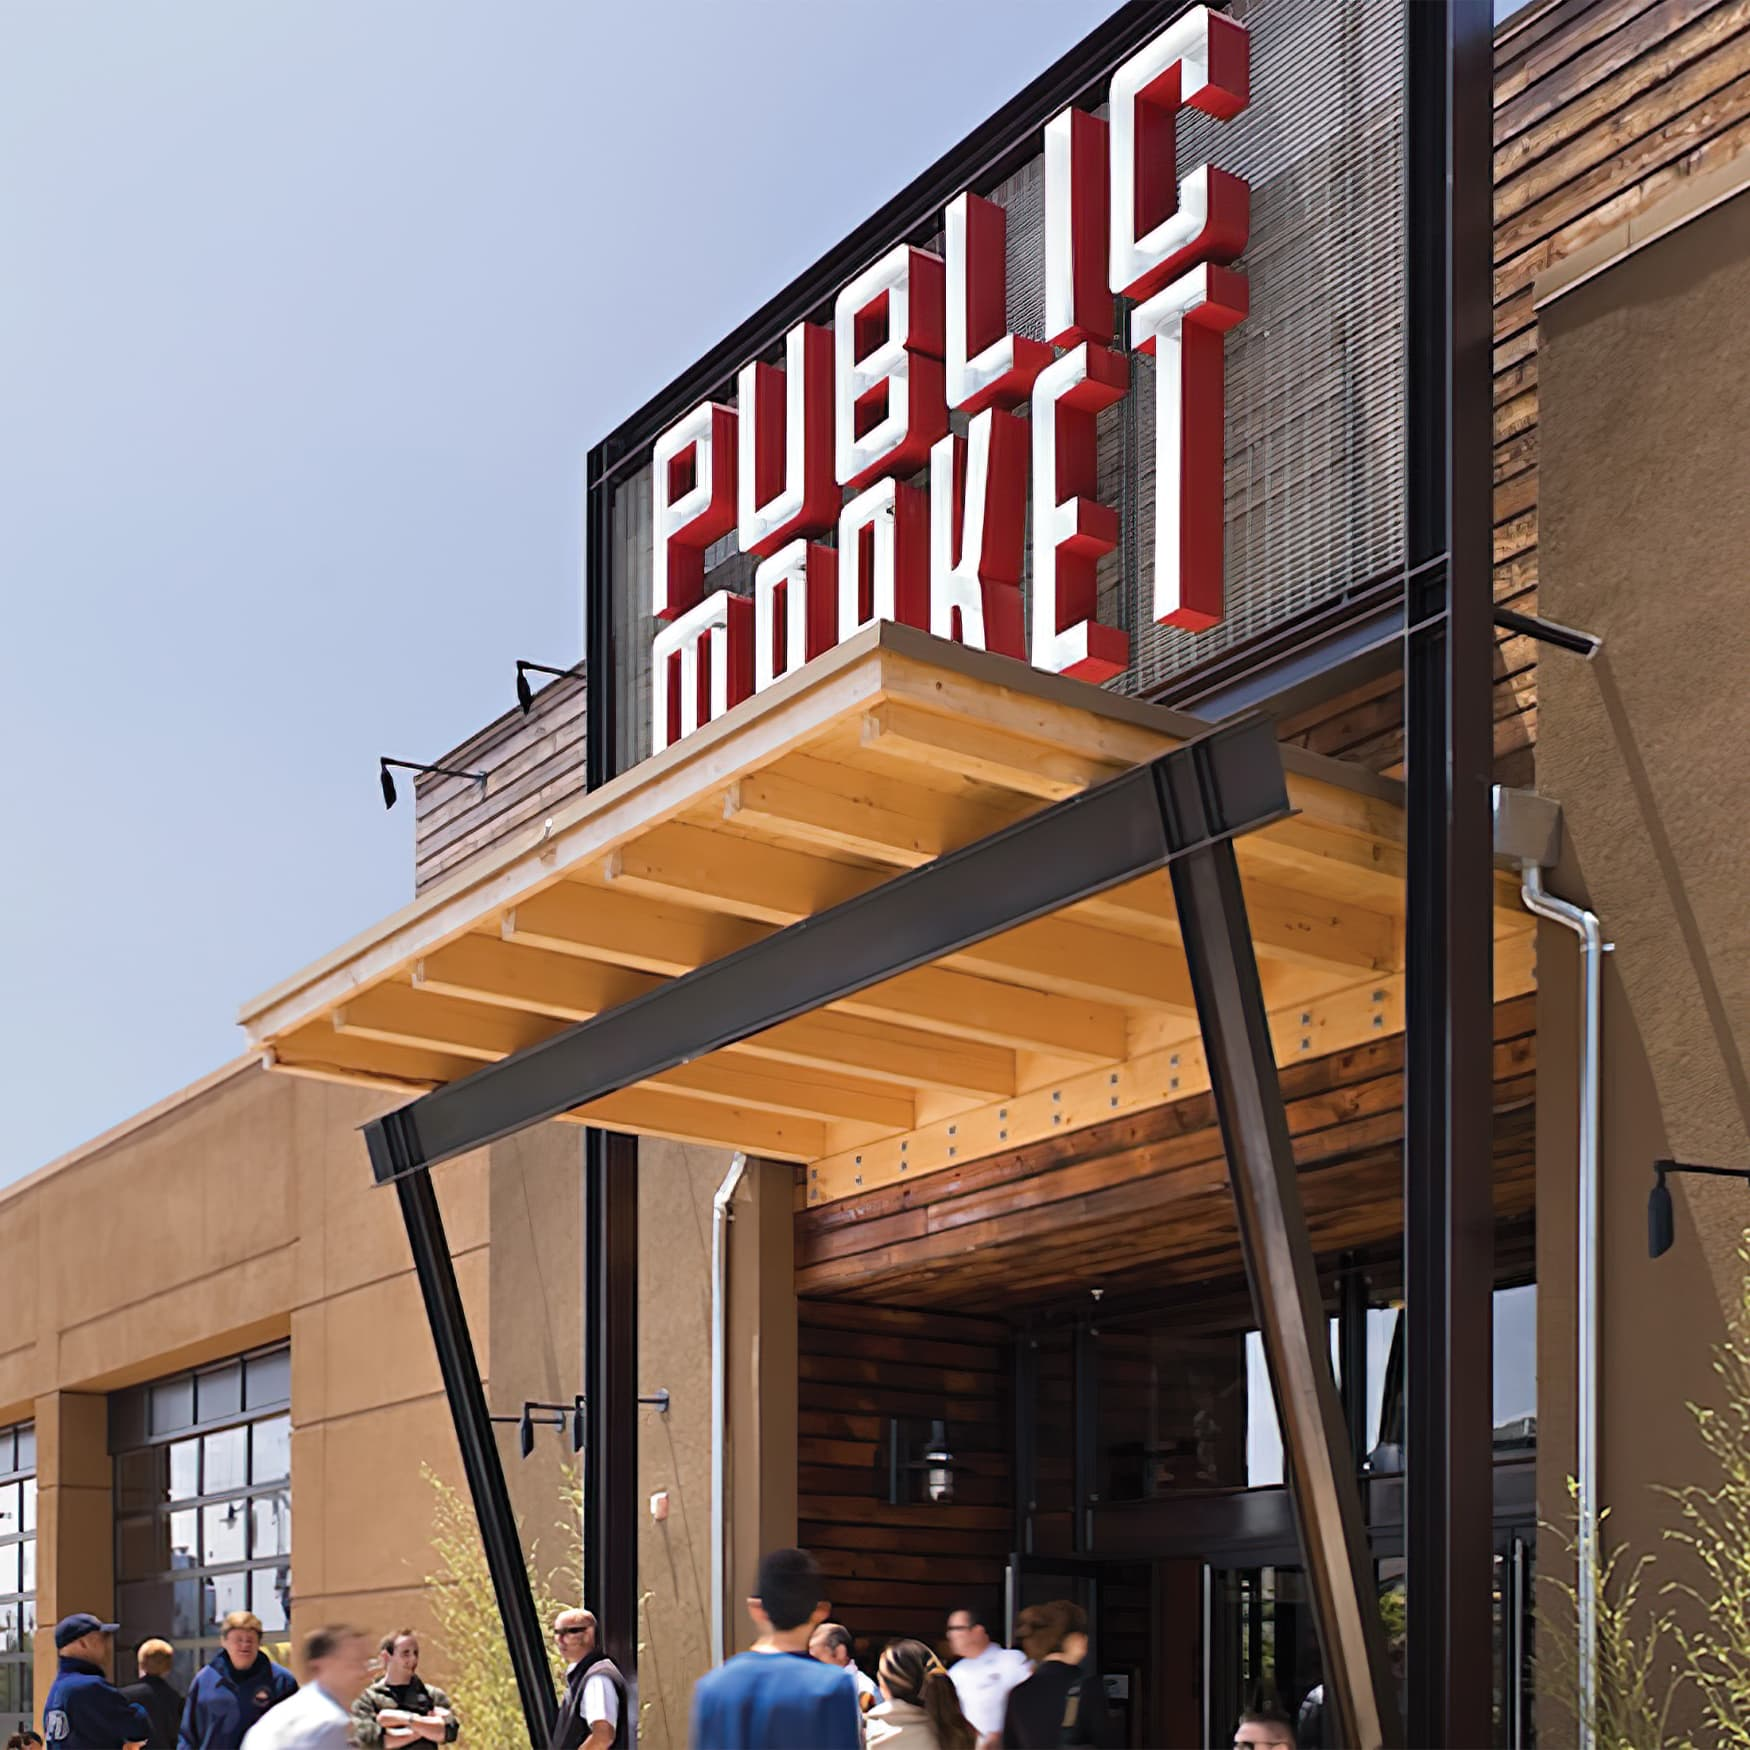 Industrial-styled market entrance with dimensional sign identity